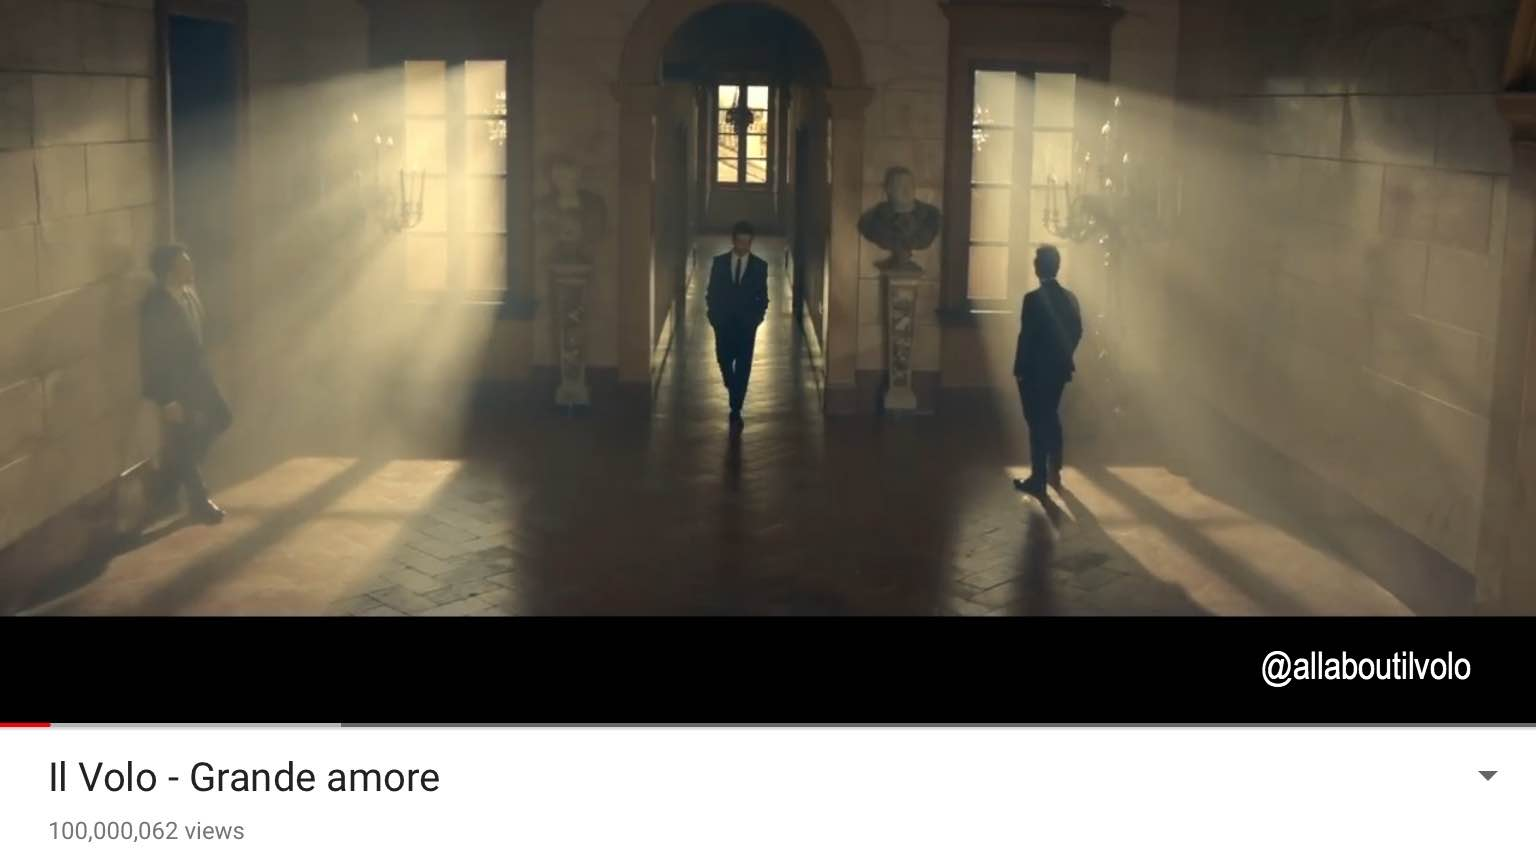 Grande Amore 100 million views